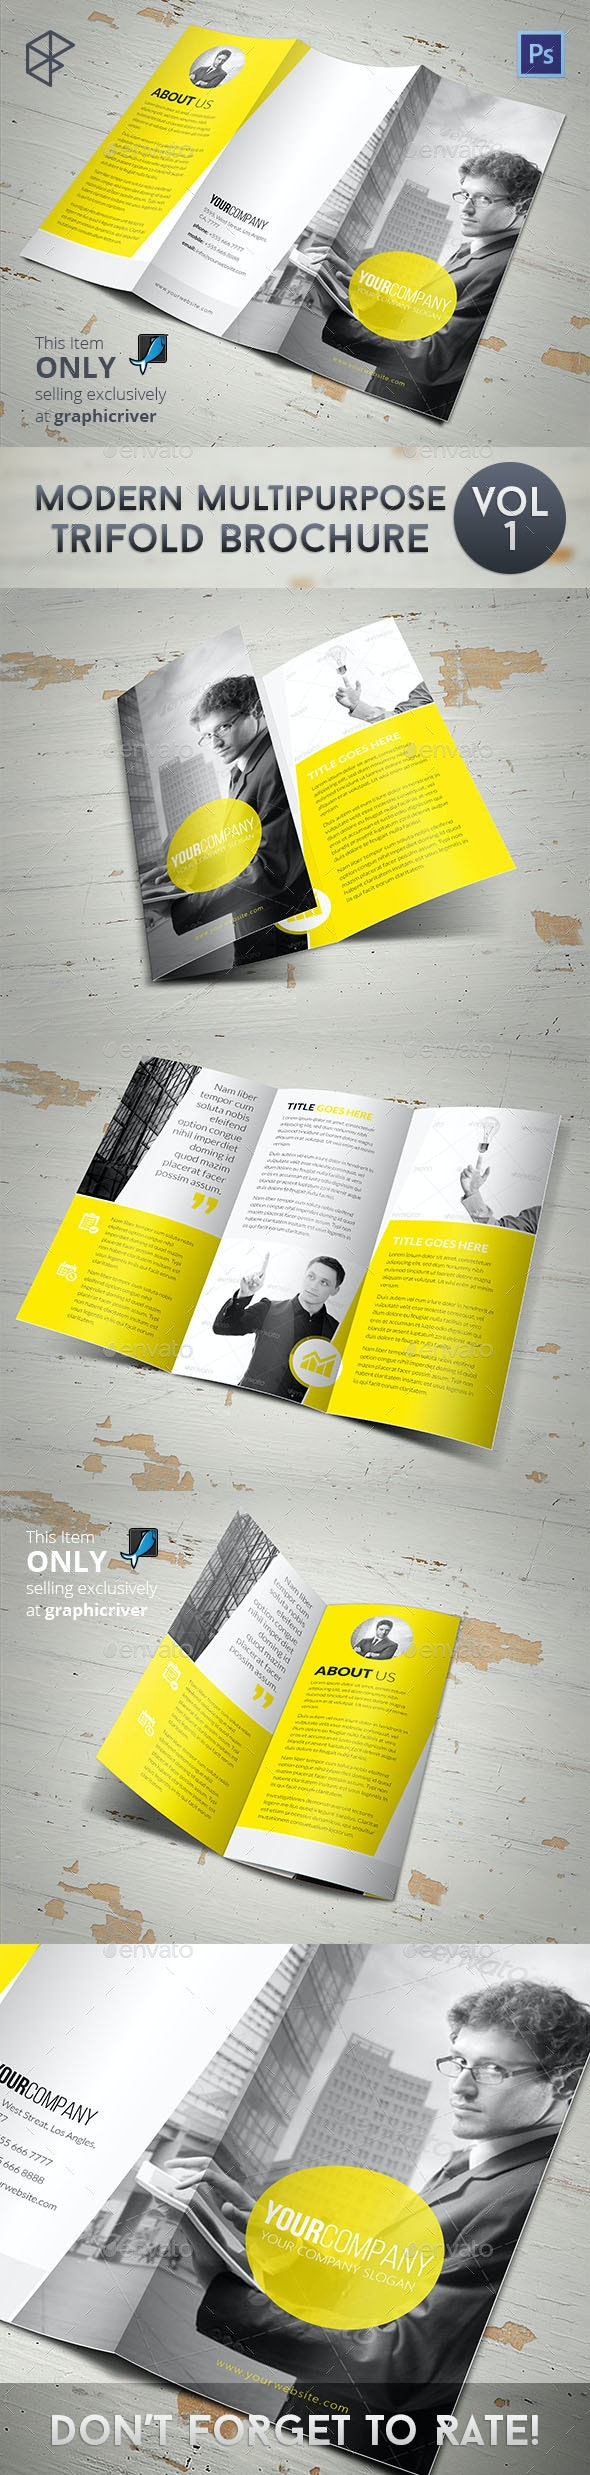 Modern Multipurpose Trifold Brochure - Corporate Brochures